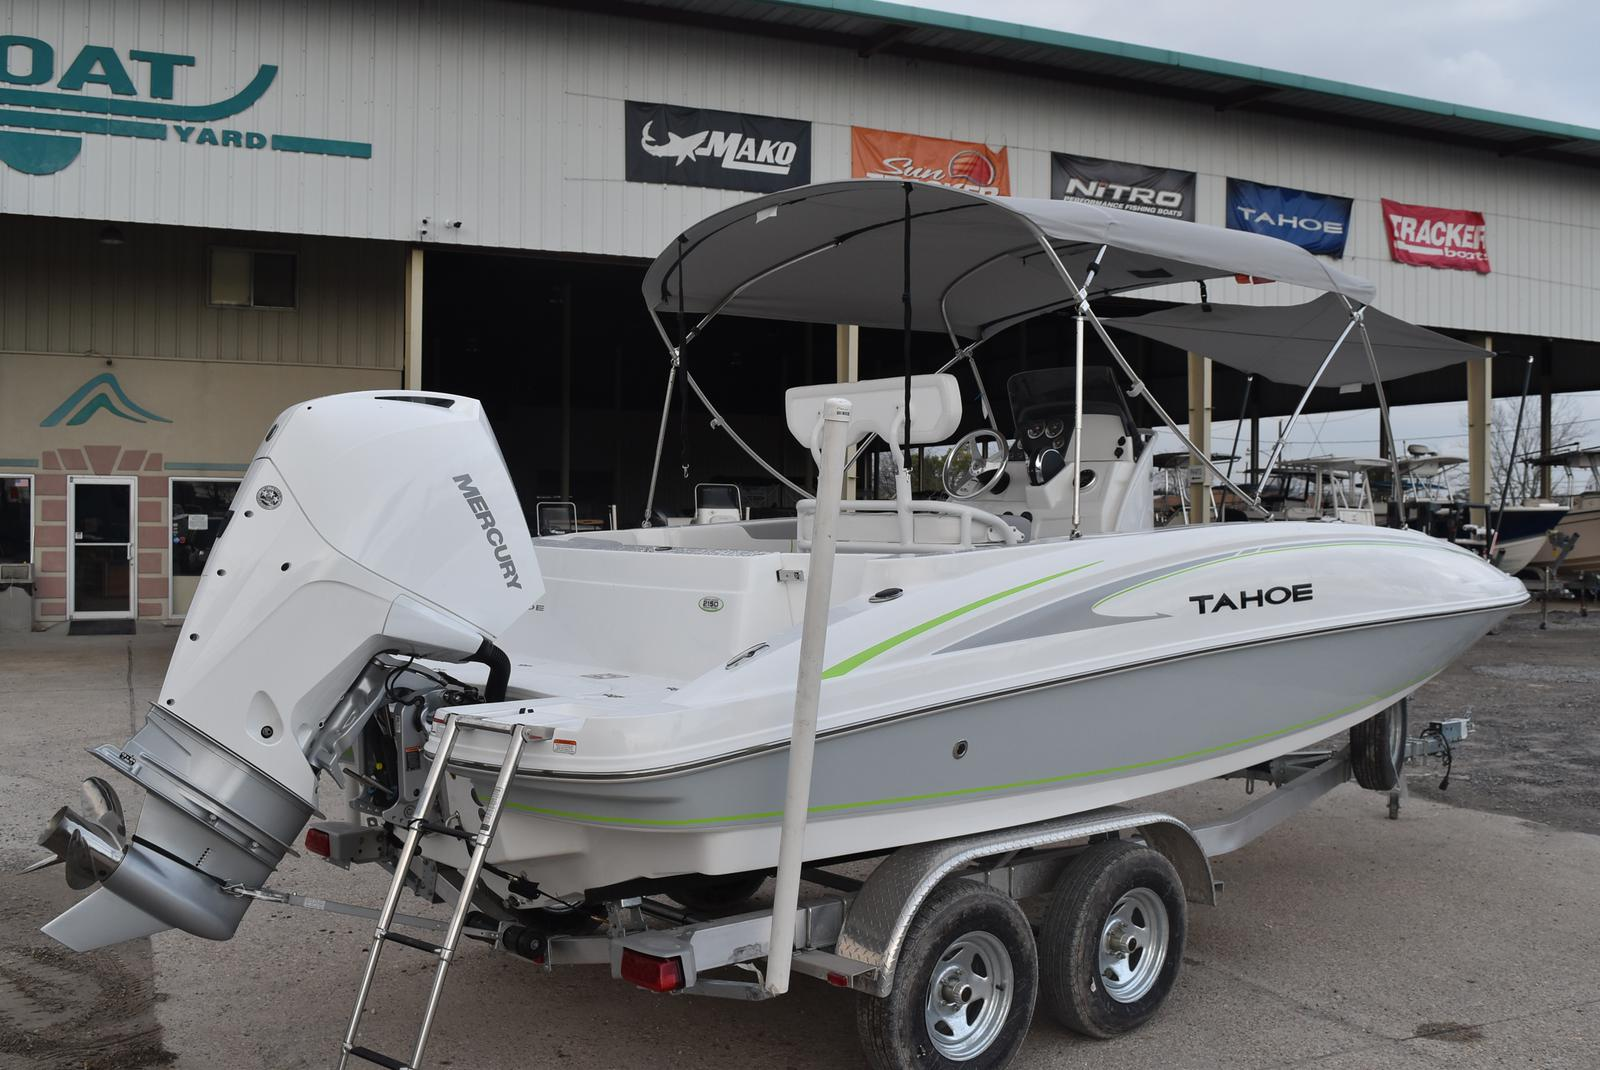 2021 Tahoe boat for sale, model of the boat is 2150cc & Image # 14 of 17